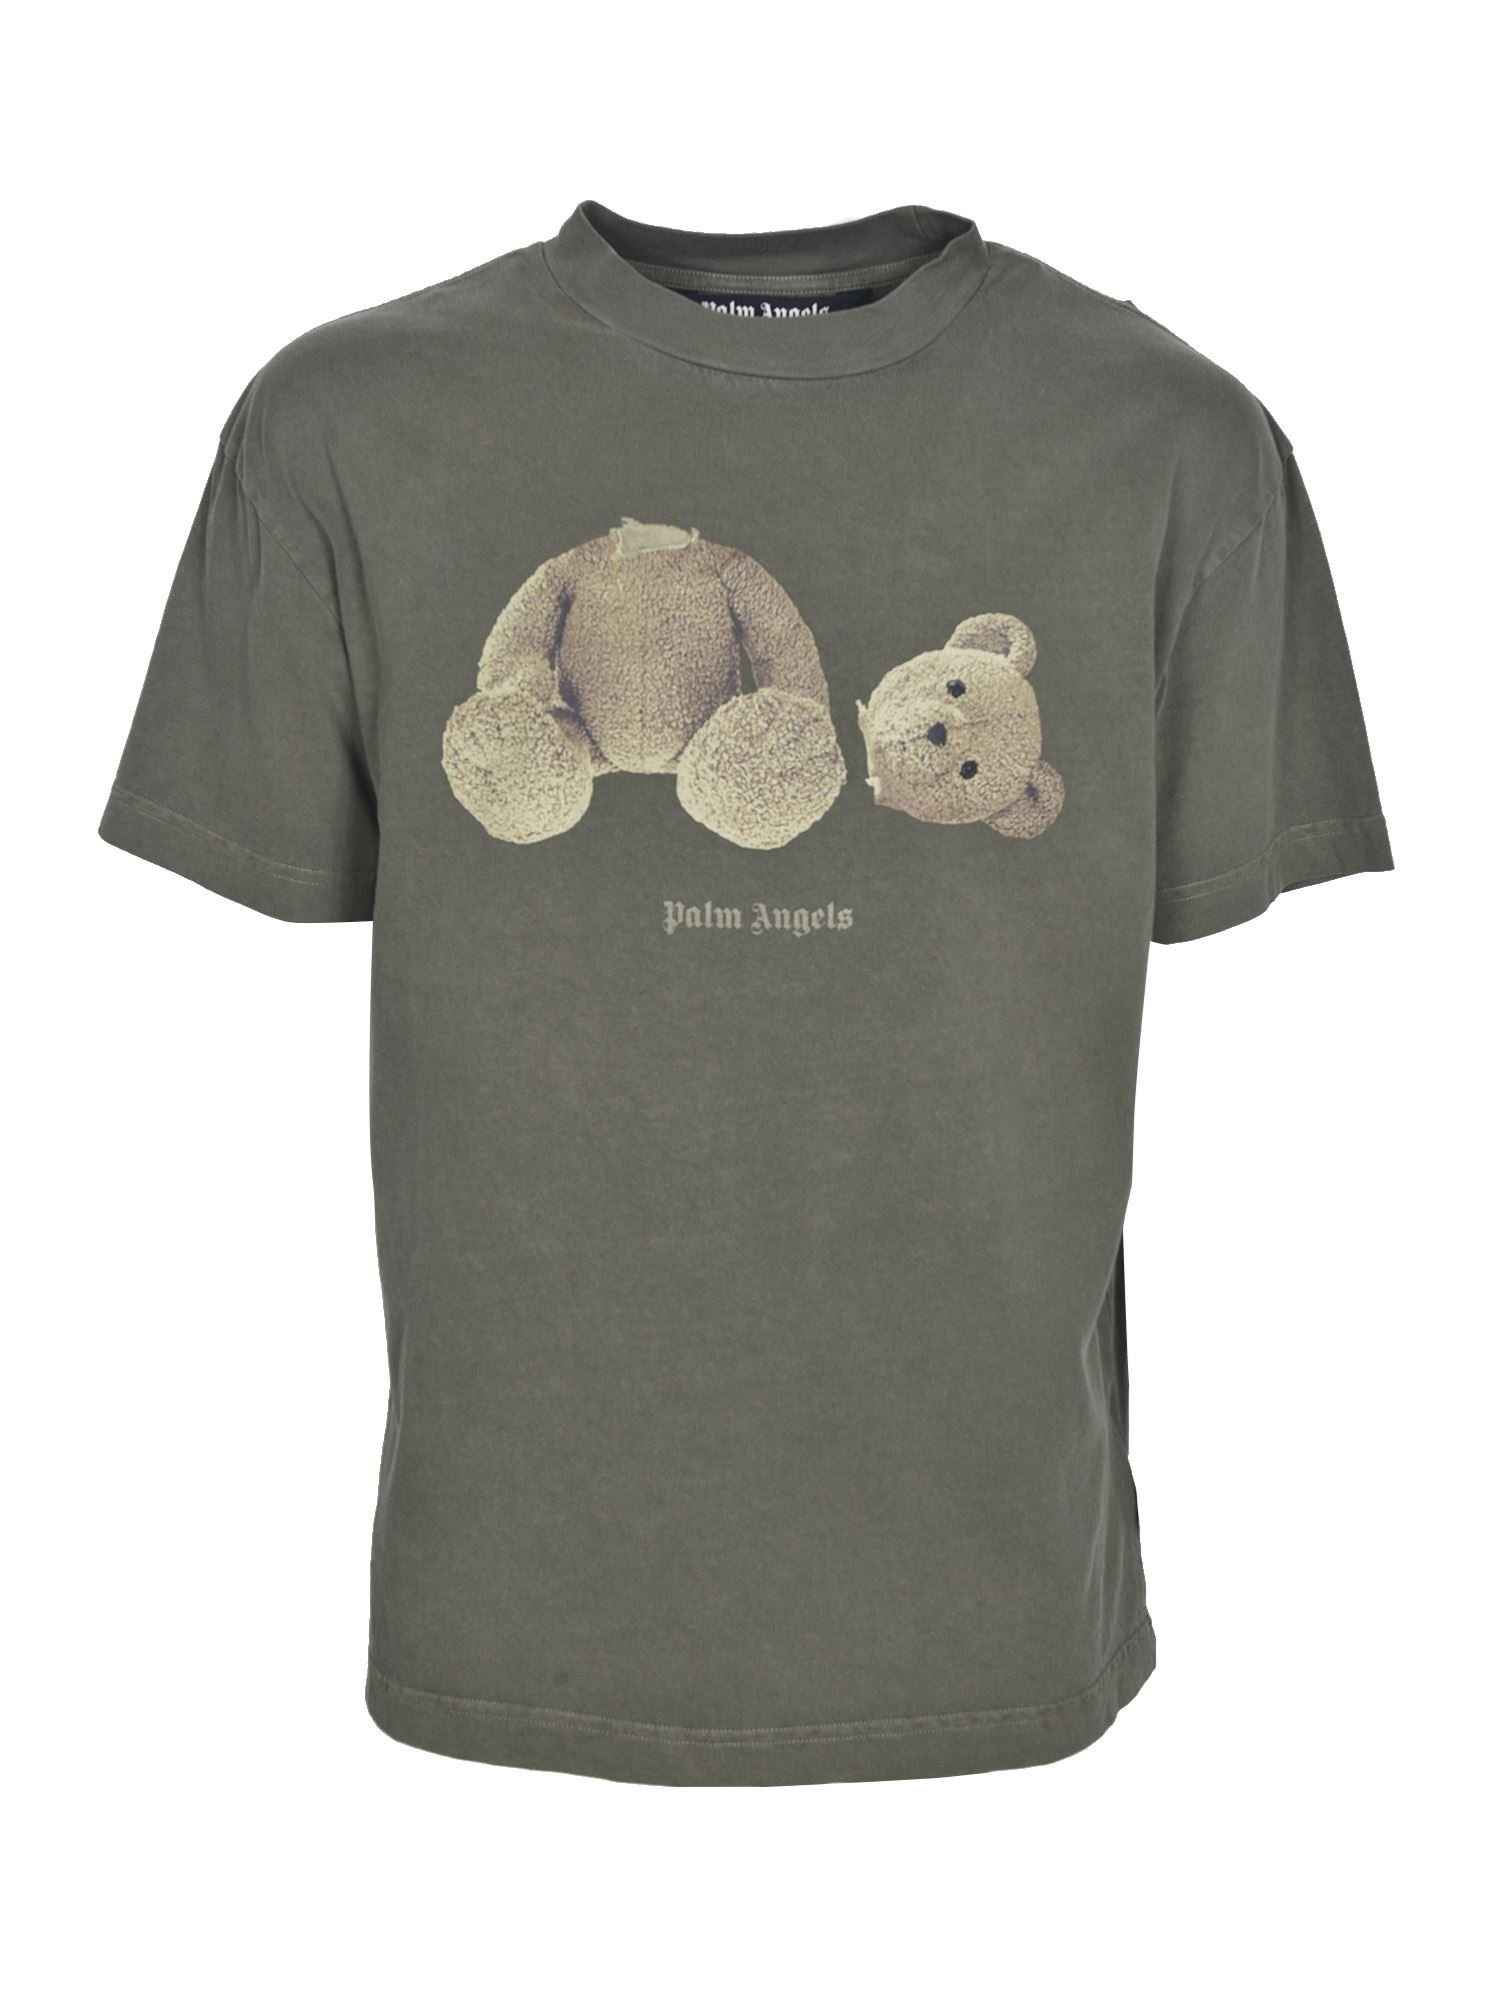 Palm Angels BEAR T-SHIRT IN ARMY GREEN